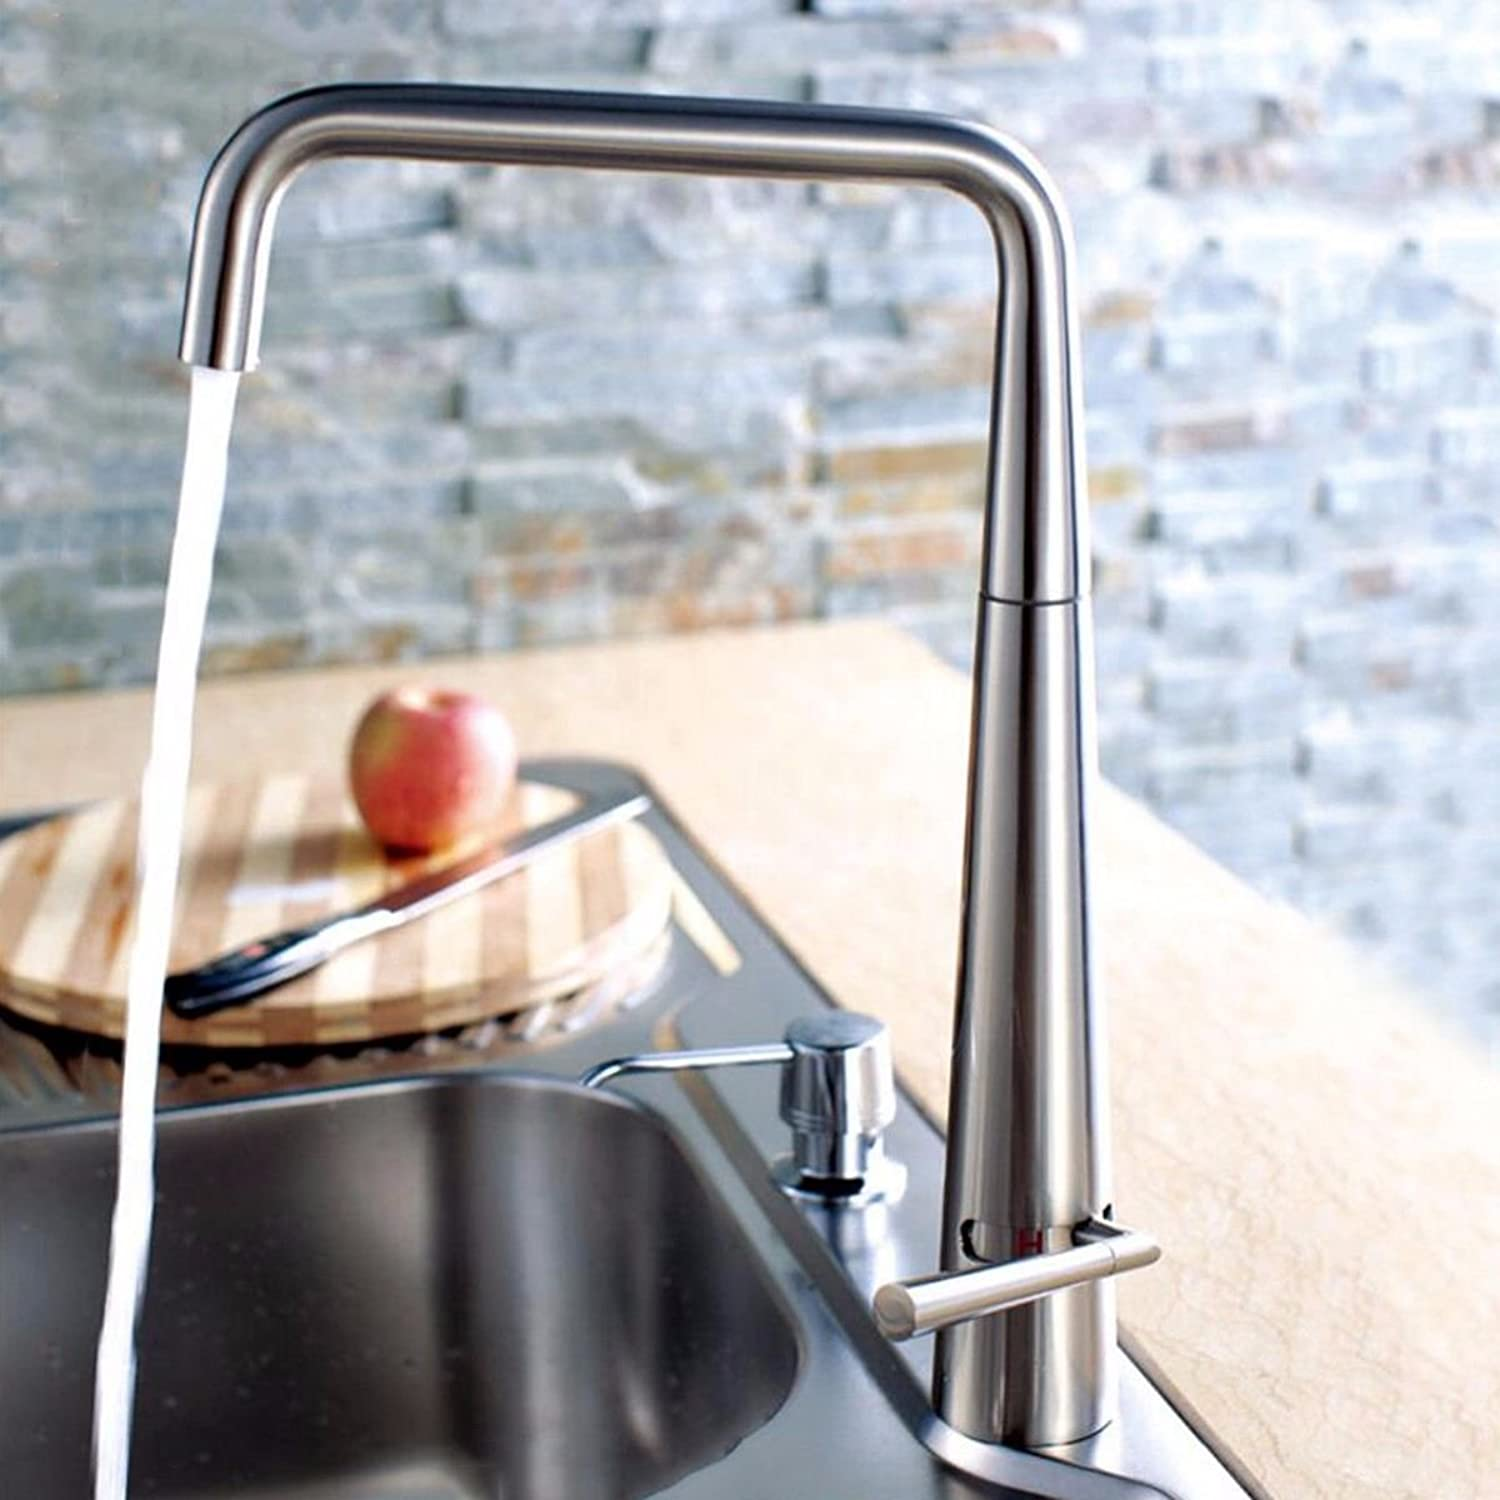 XPYFaucet Faucet Tap Taps Kitchen hot and cold copper sink sink laundry pool redatable sink, A2